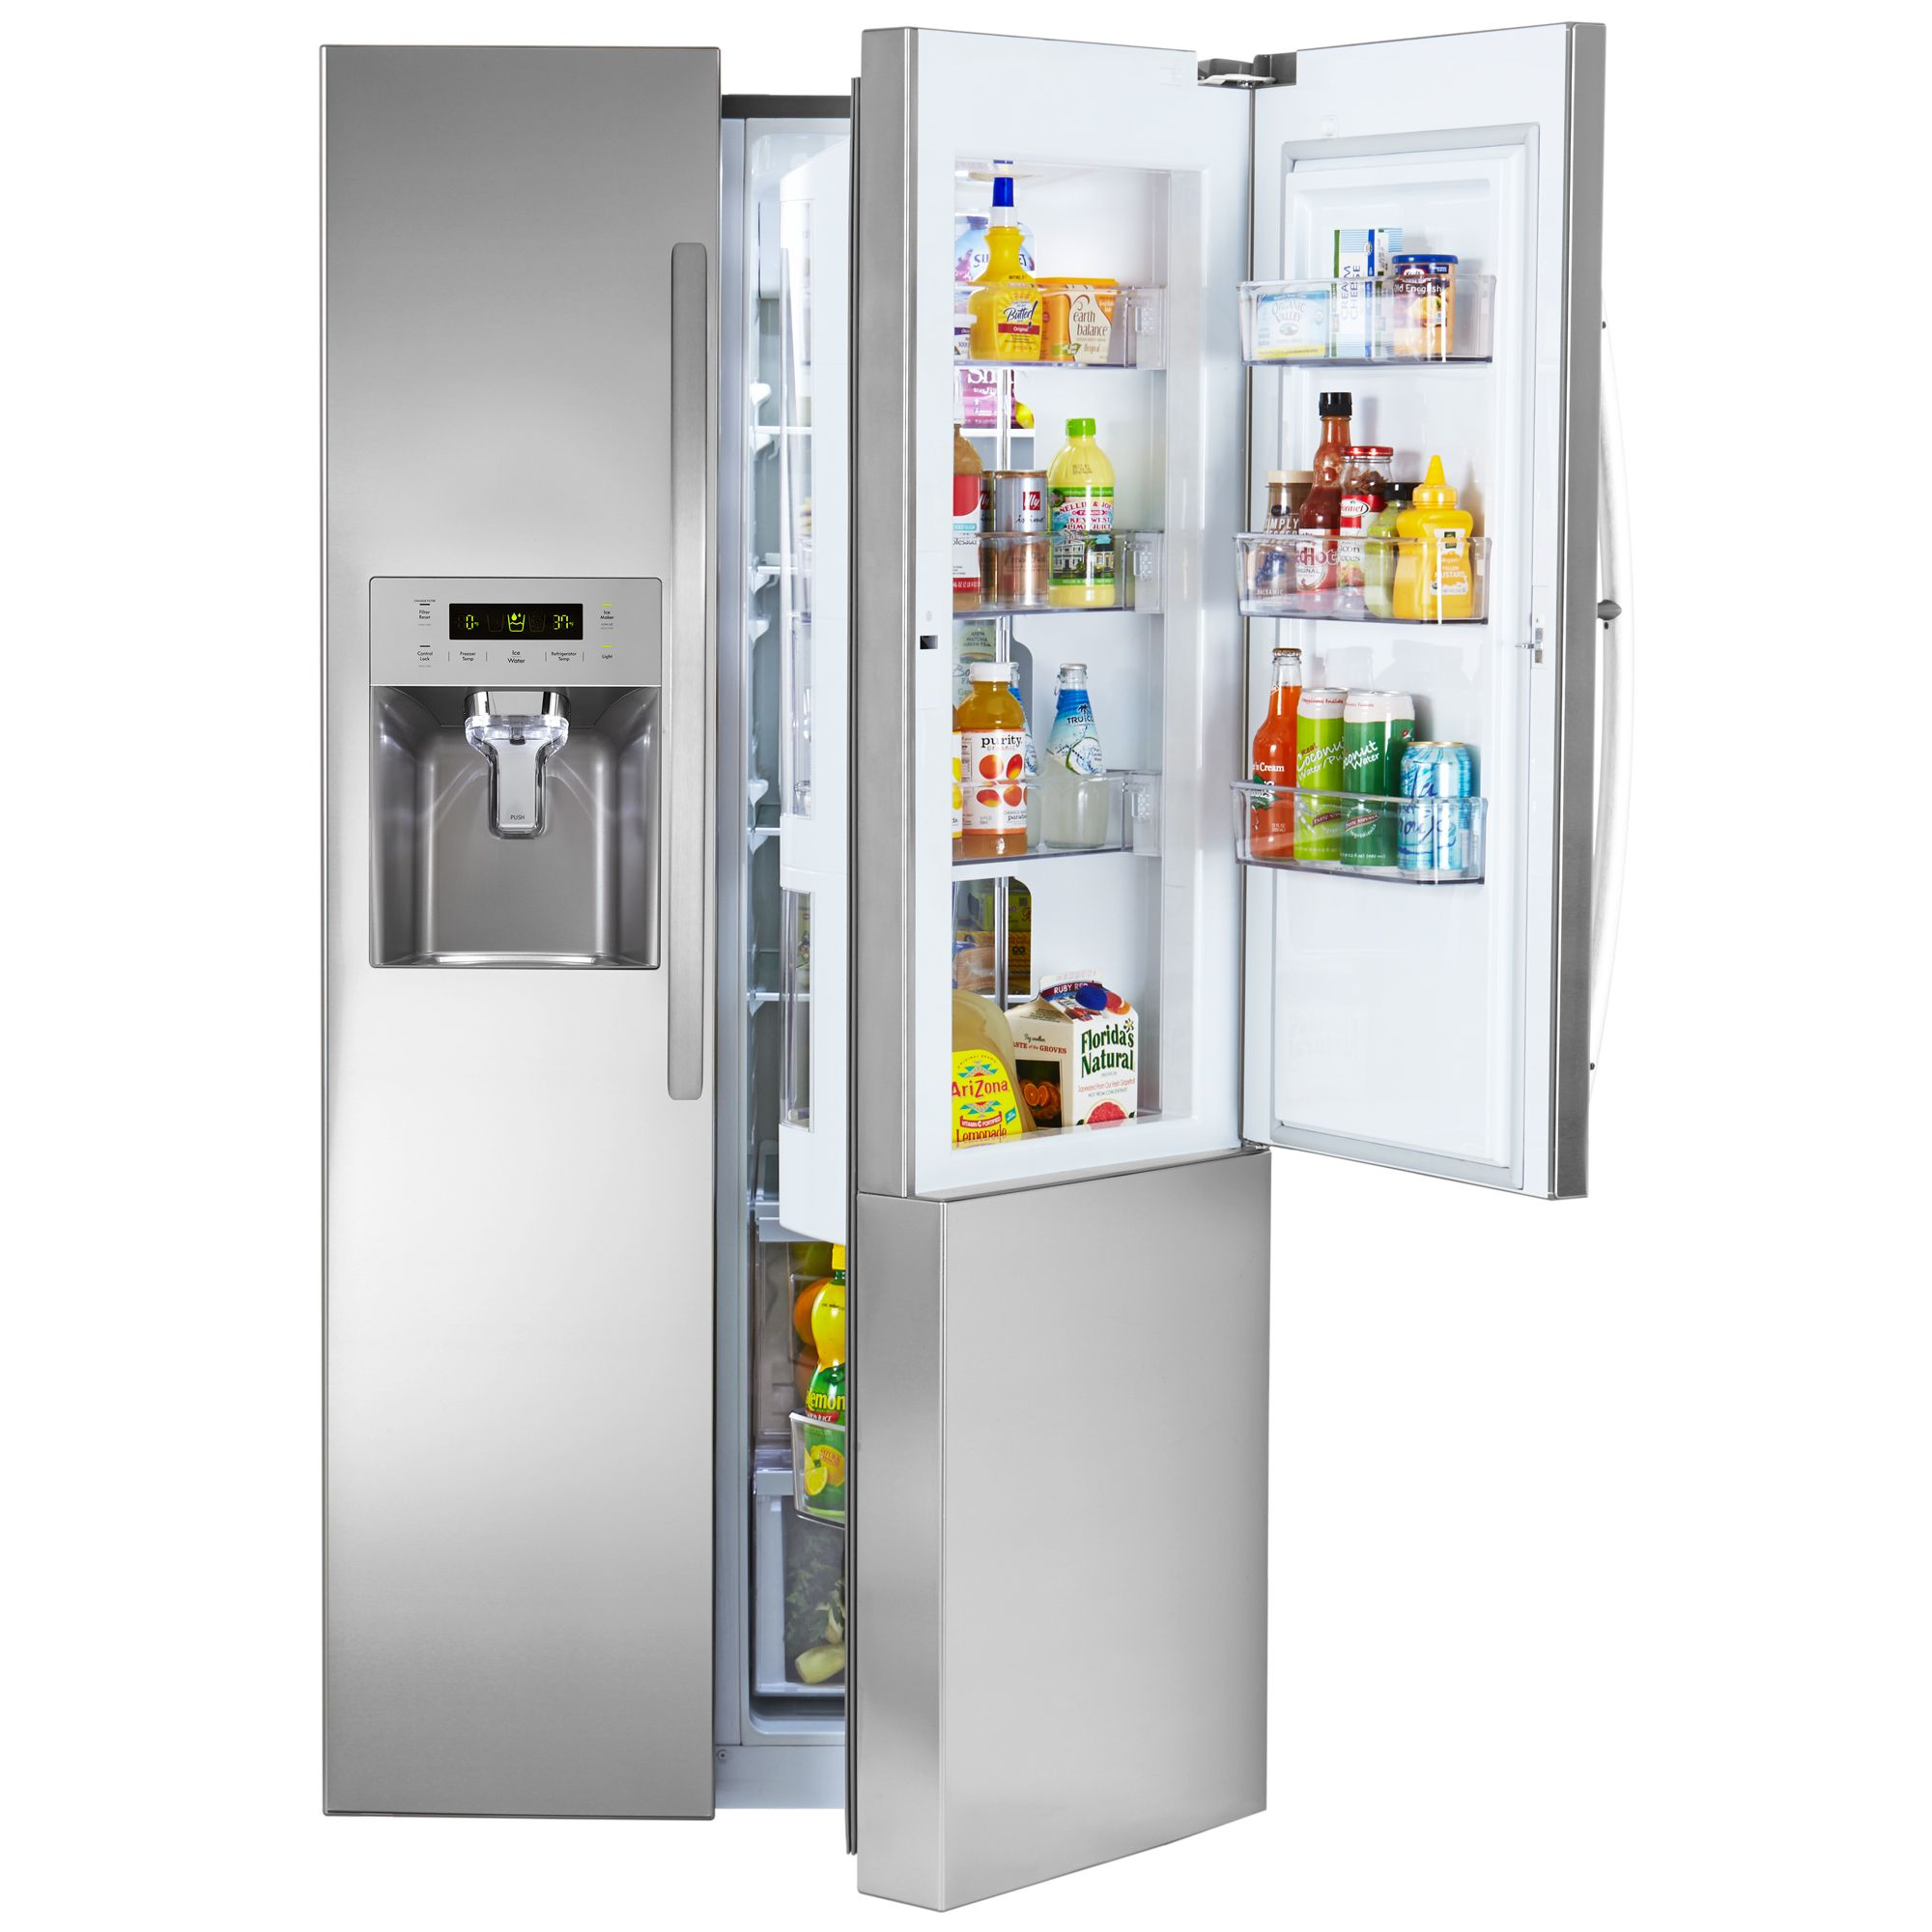 Kenmore 26 1 Side By Side Fridge W Grab N Go Fresh Accessible